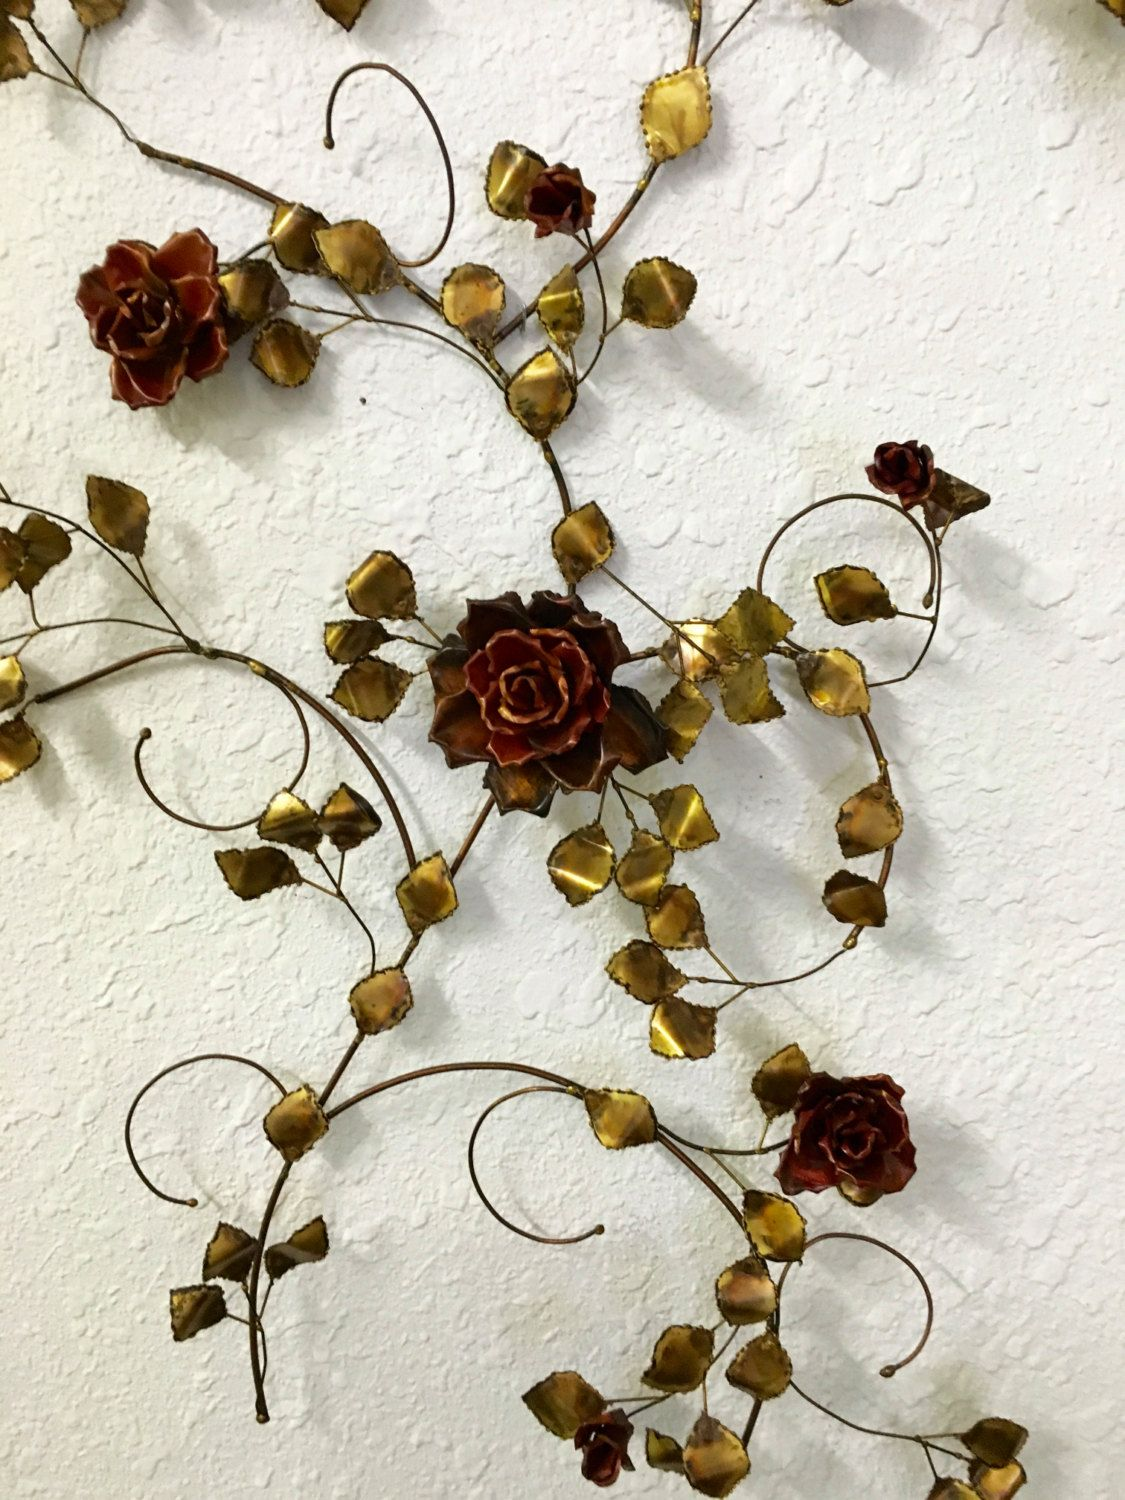 Metal Rose Wall Art Large Metal Red Rose Bush Wall Sculpture Vintage Wall Art Decor.